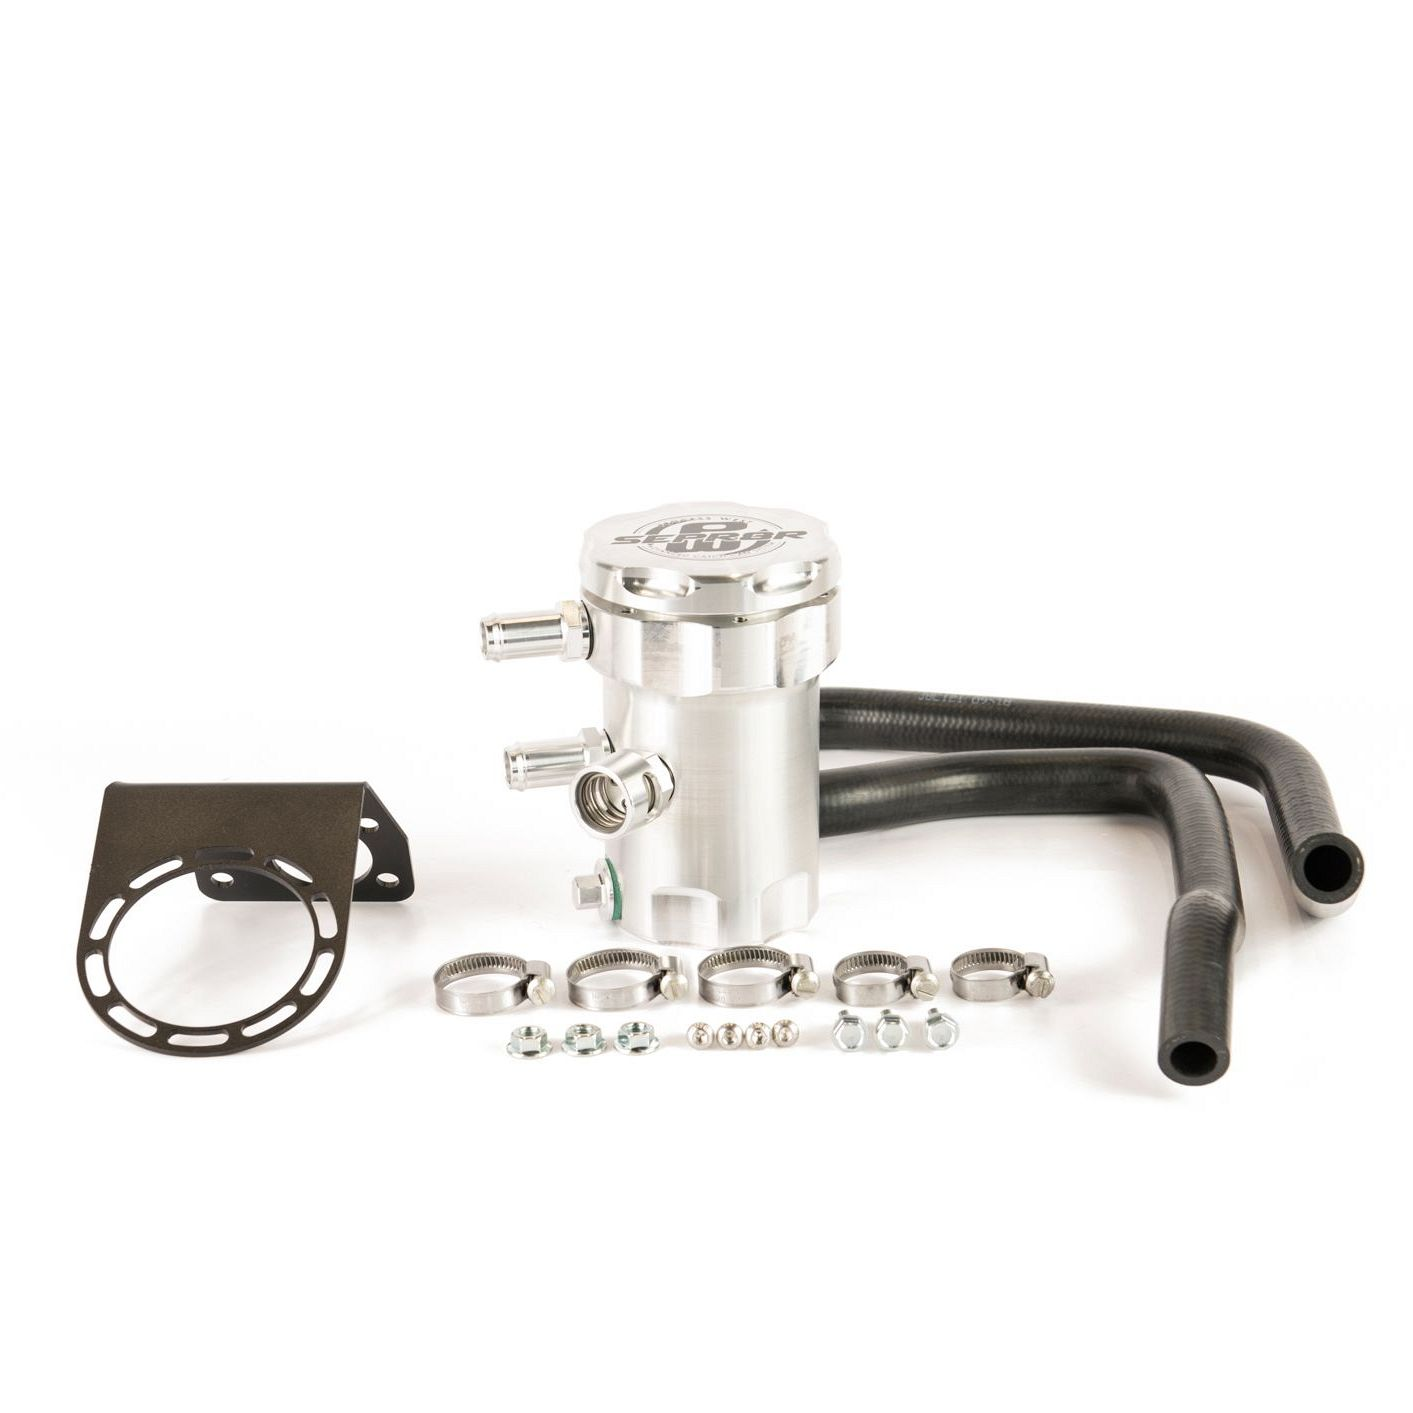 SEPR8R Air Oil Separator - Dodge Ram 2010+ 6.7 Cummins